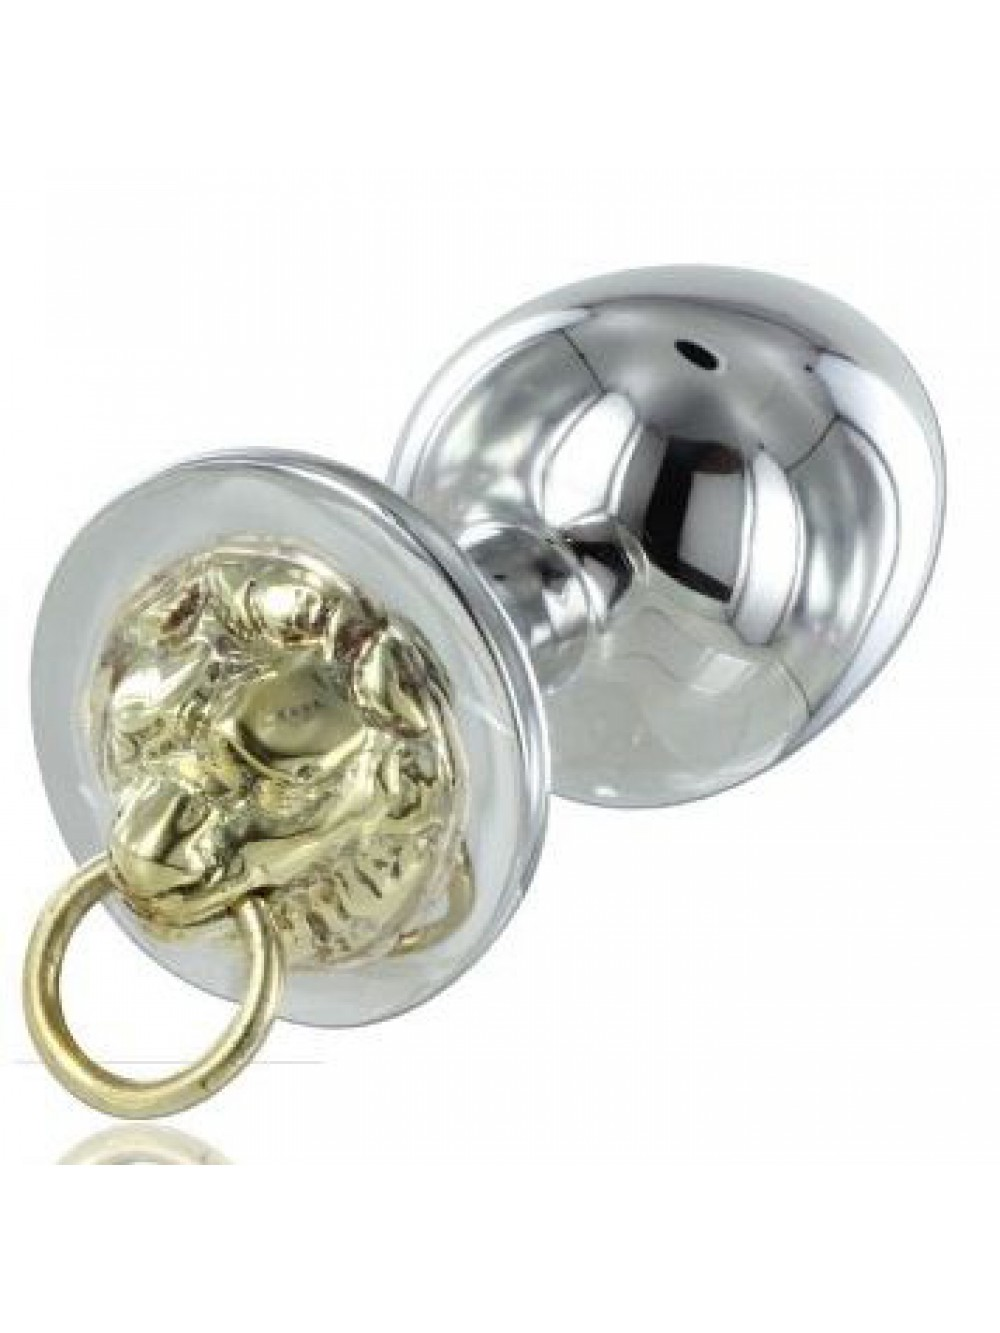 METALHARD ANAL PLUG STAINLESS TIGER